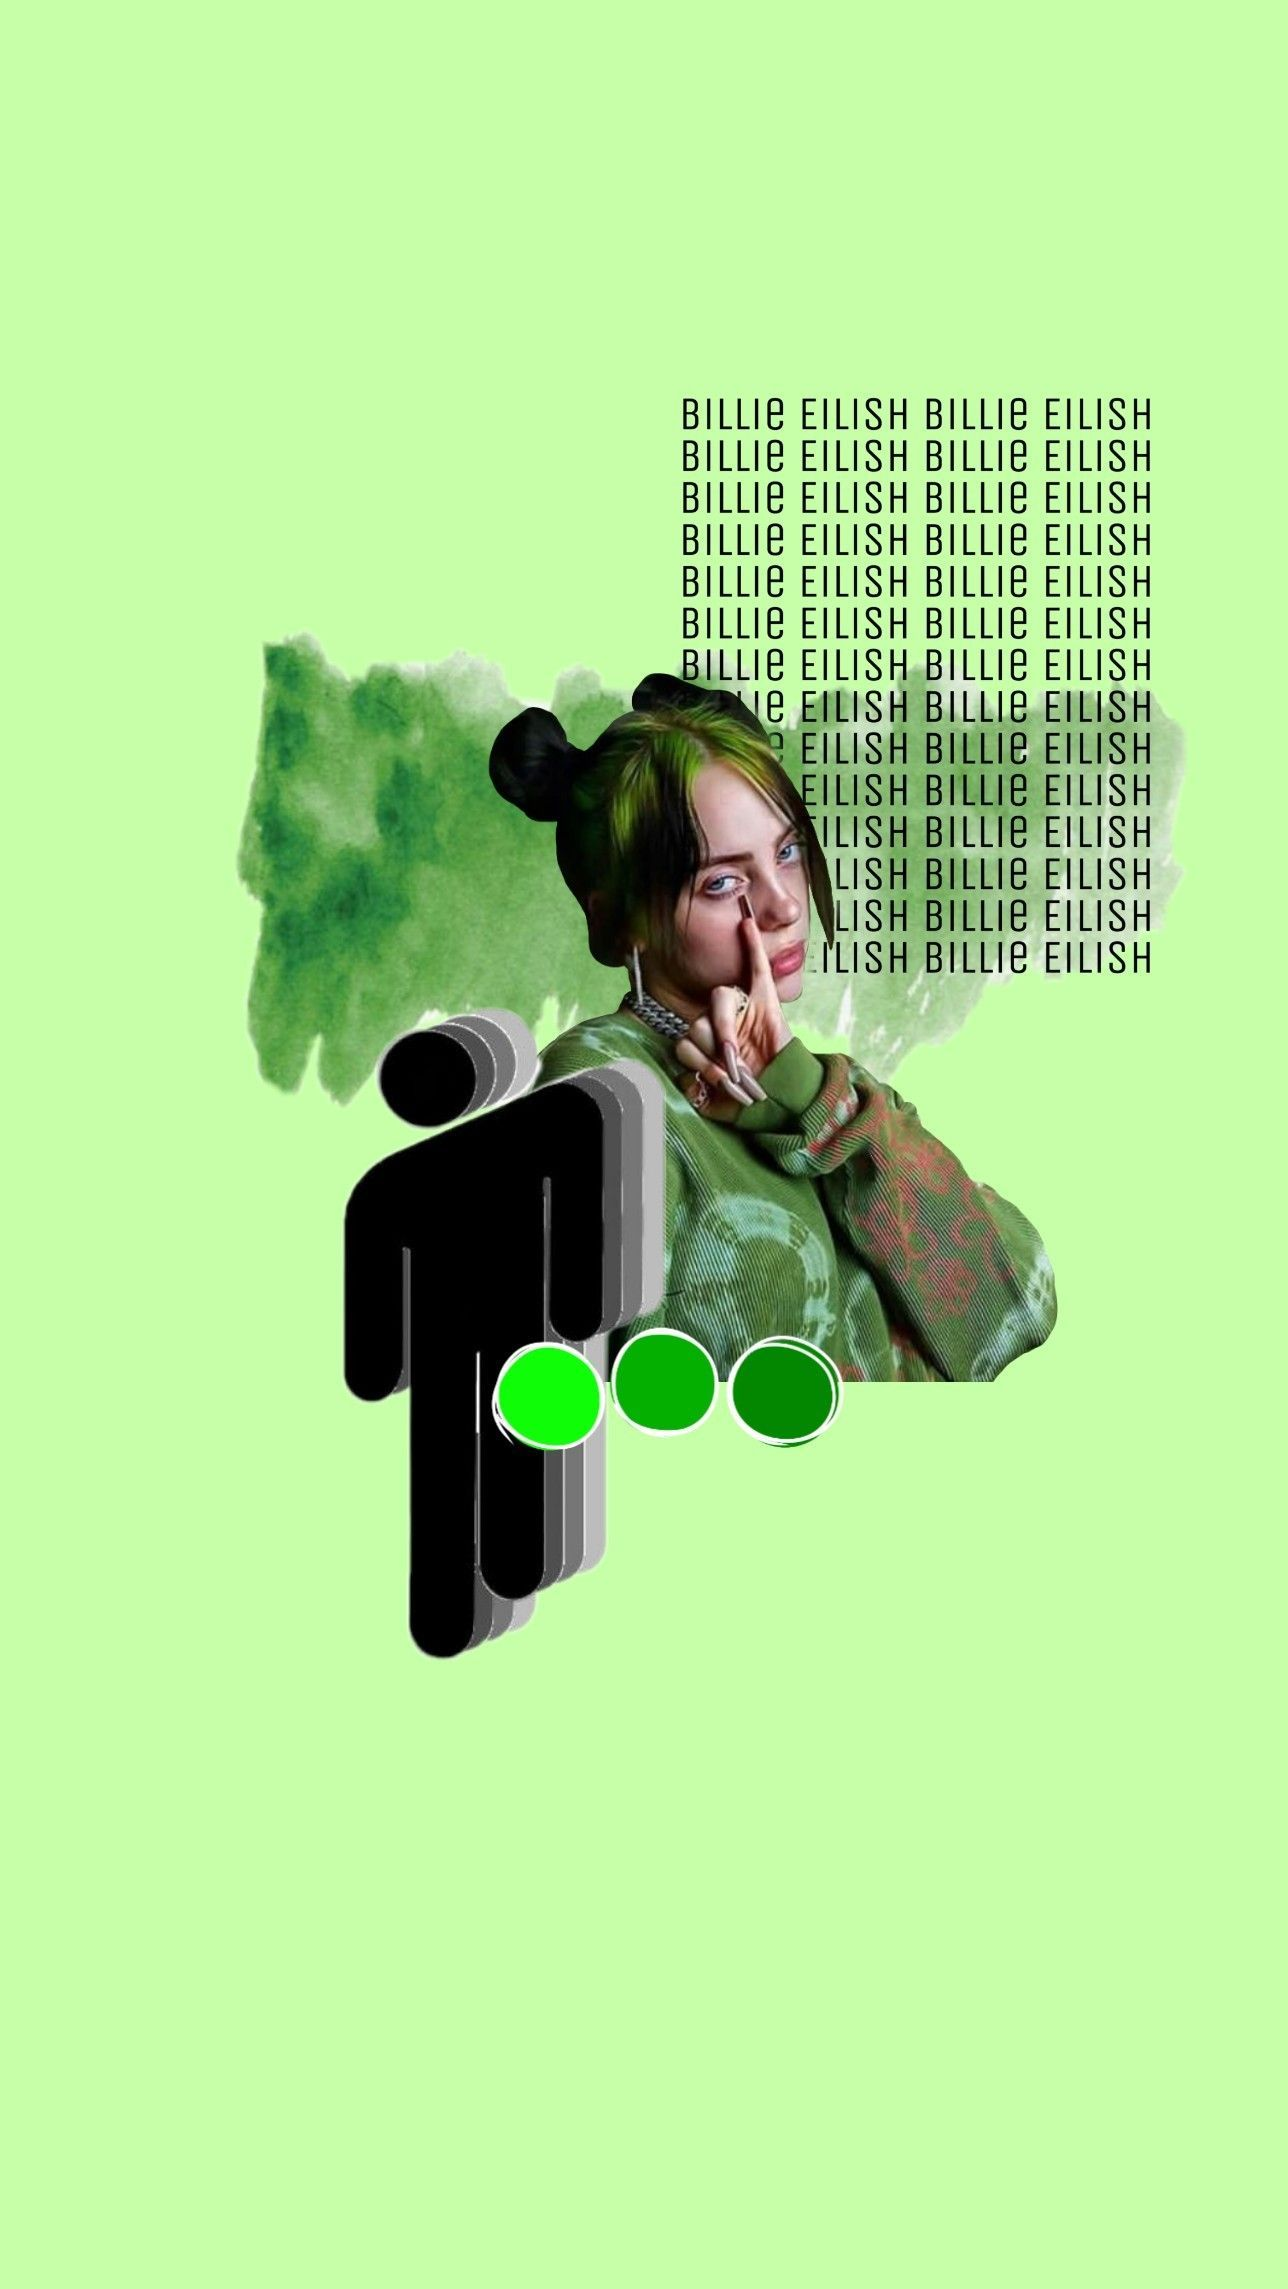 Billie Eilish Background In 2020 Billie Eilish Billie Green Aesthetic